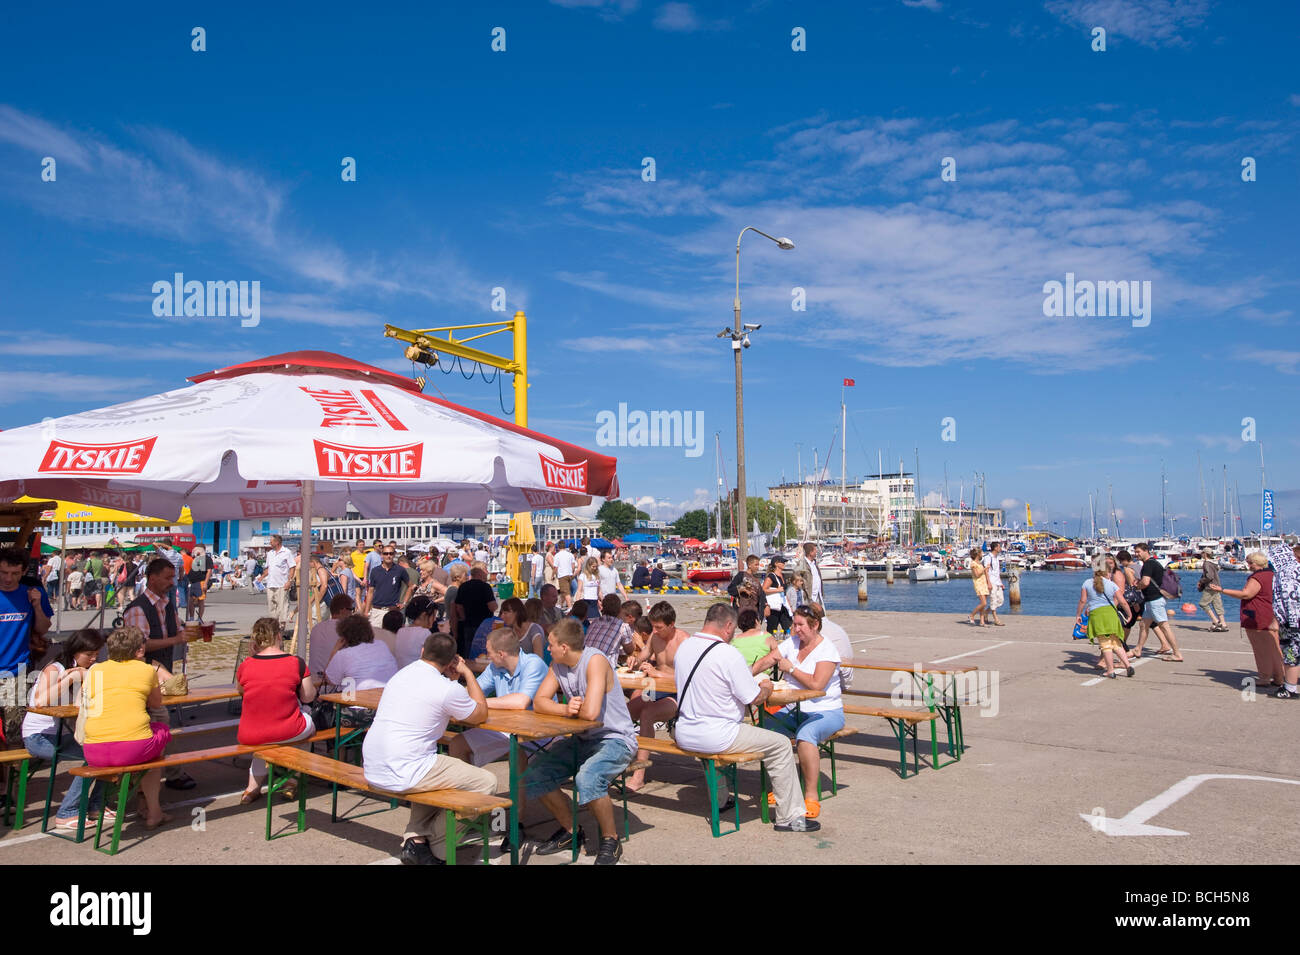 People relax in a bar on Kosciuszko Square by the marina Gdynia Poland Stock Photo